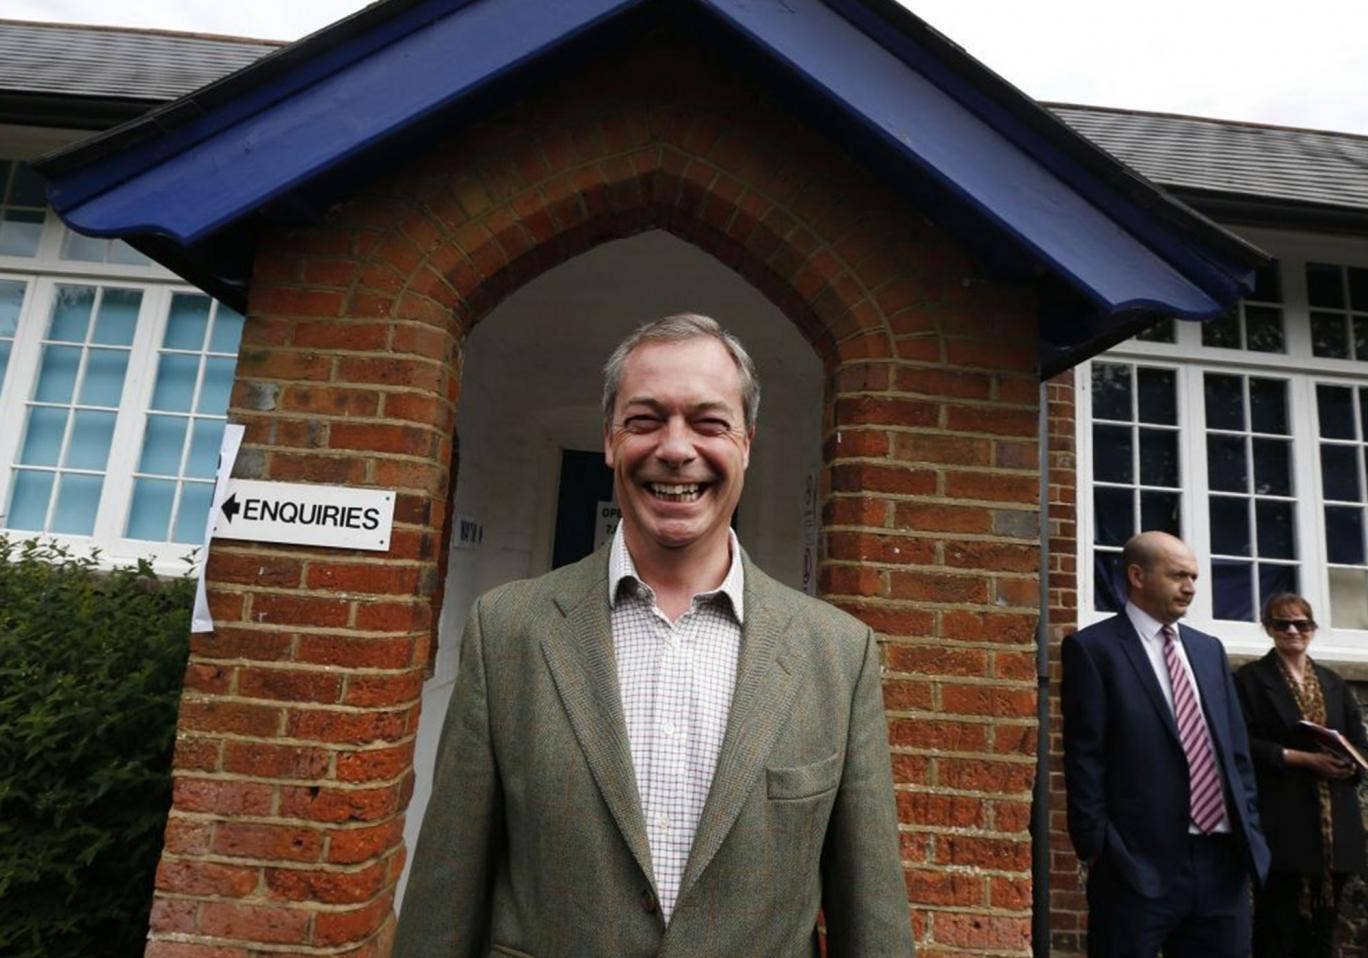 Nigel Farage faces punishment from Electoral Commission